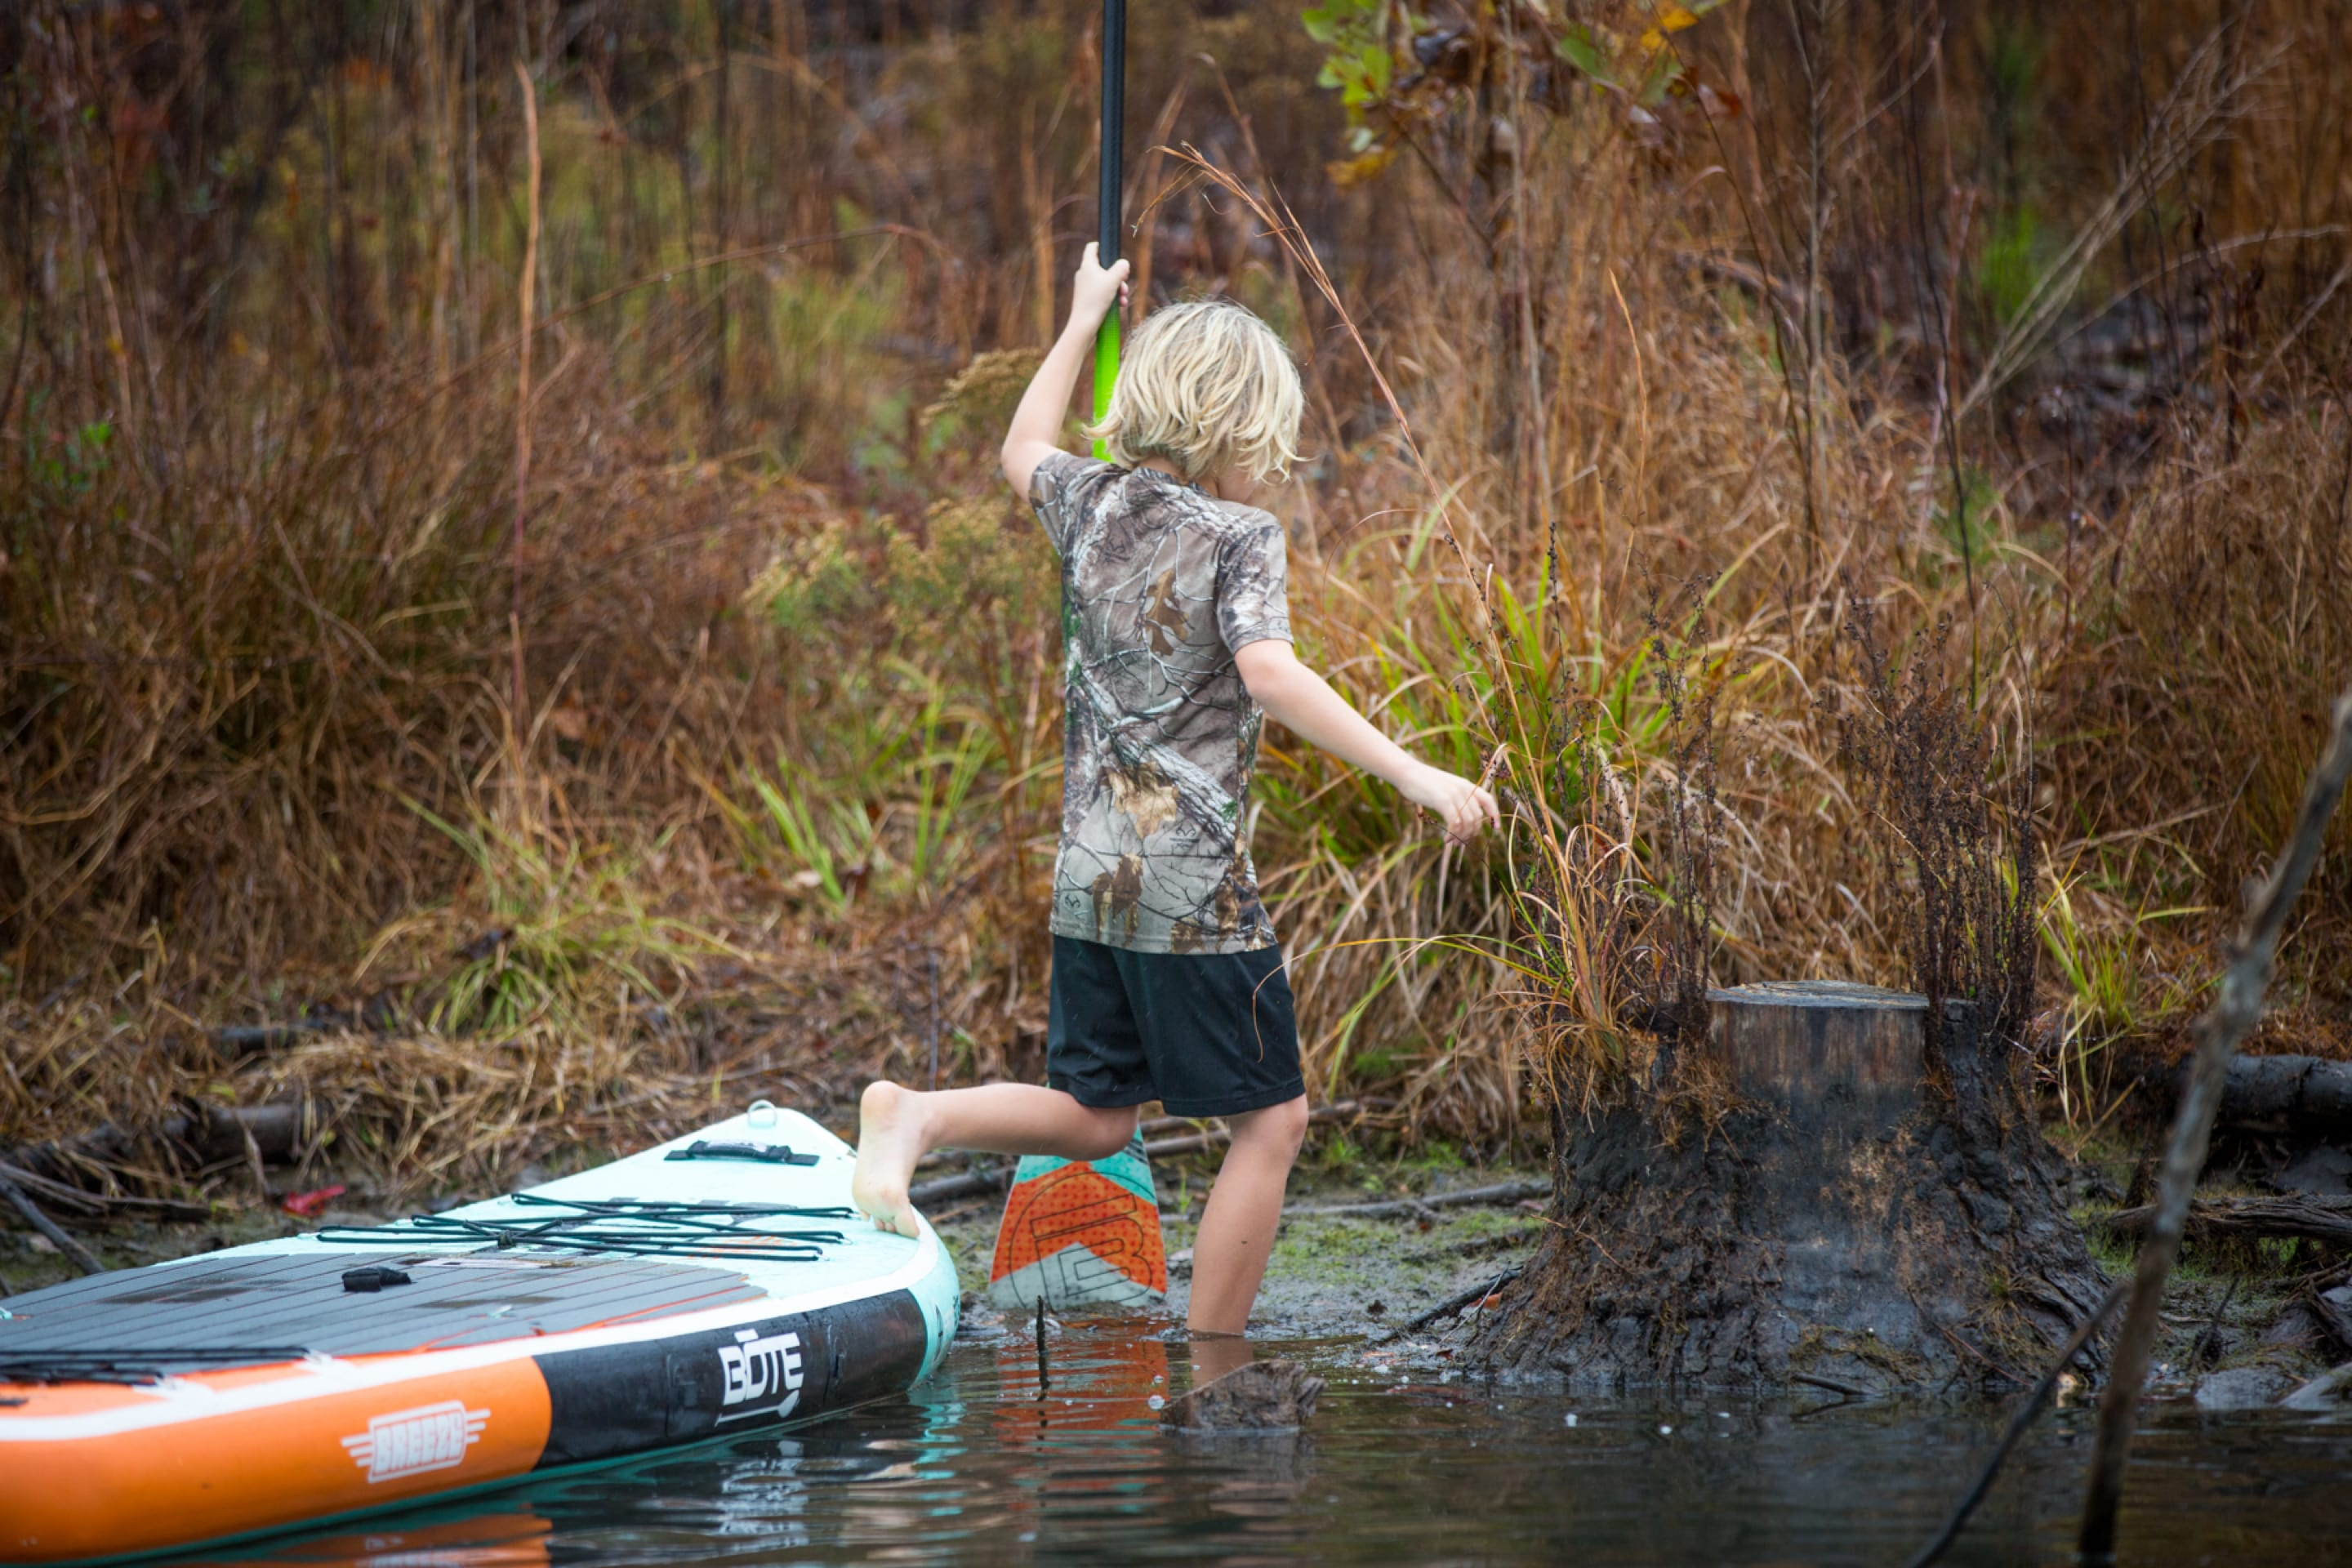 Boy using inflatable BOTE paddle board